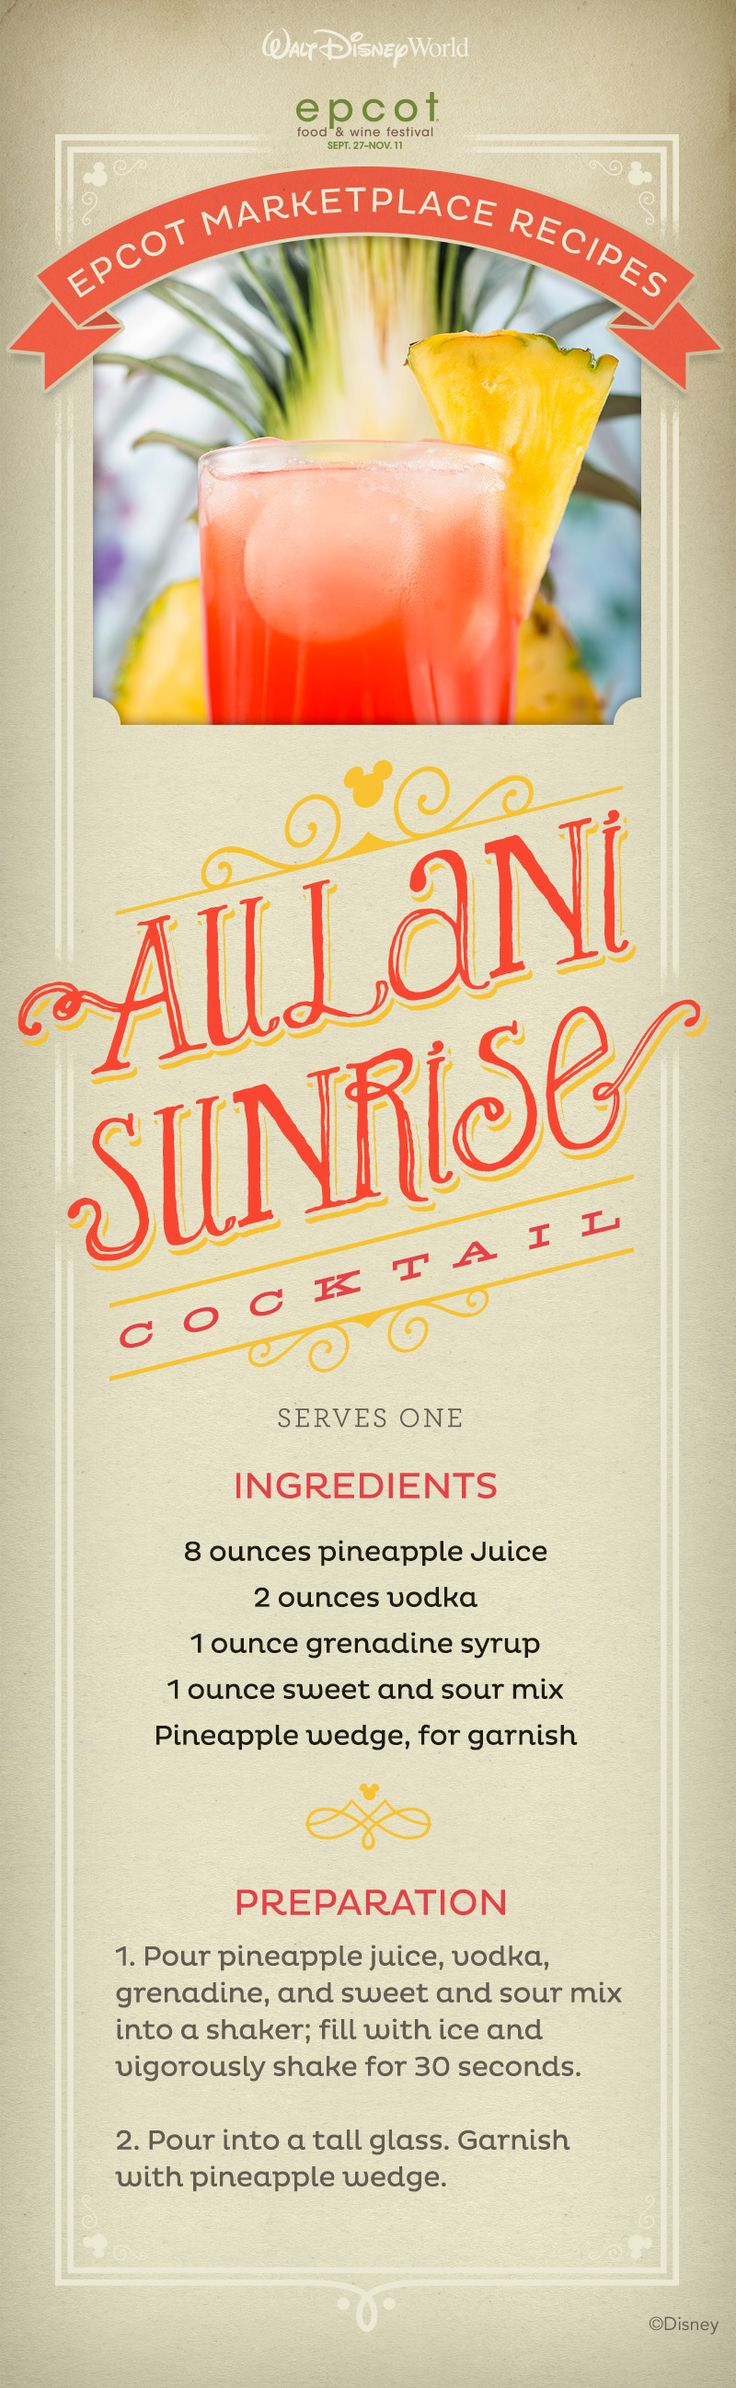 Bring Epcot International Food and Wine Festival home with this Aulani Sunrise Cocktail Recipe